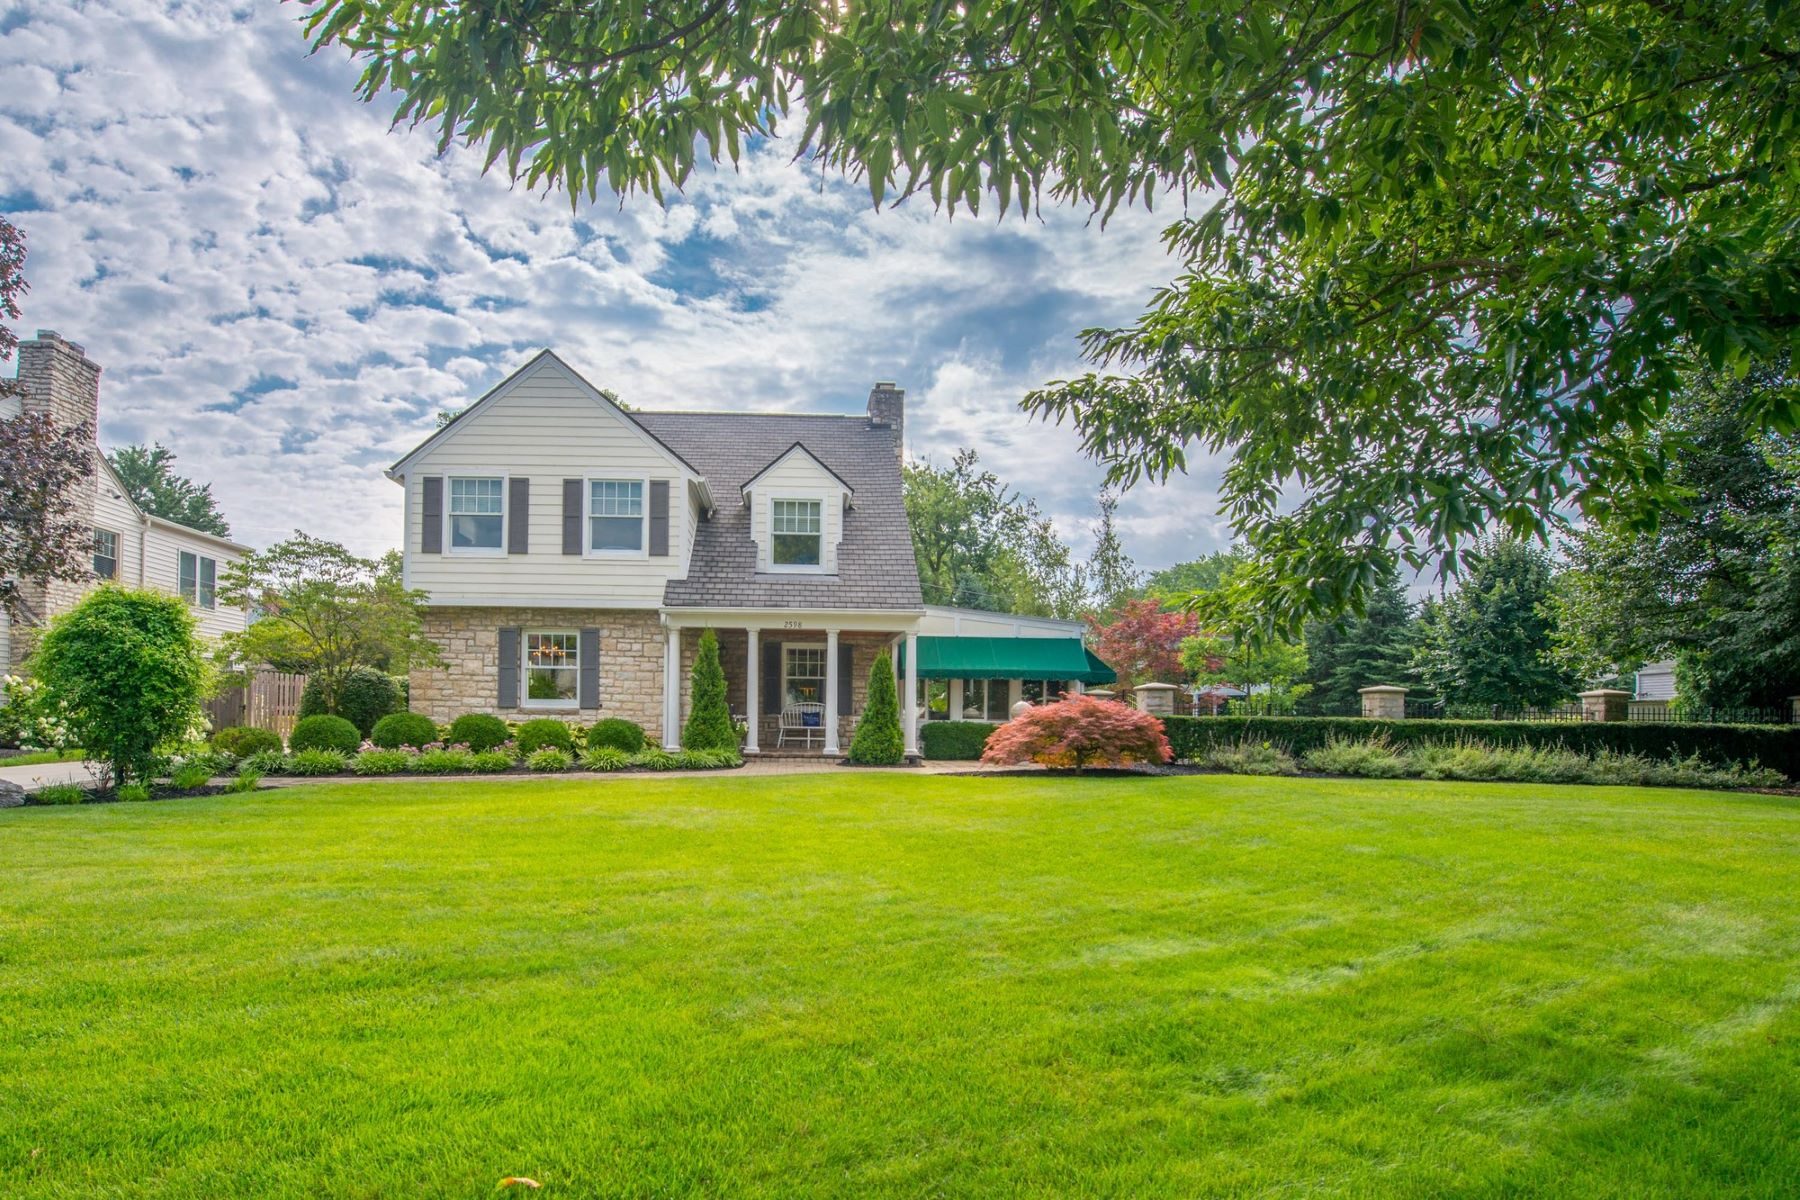 Single Family Home for Sale at 2598 Camden Road Upper Arlington, Ohio, 43221 United States